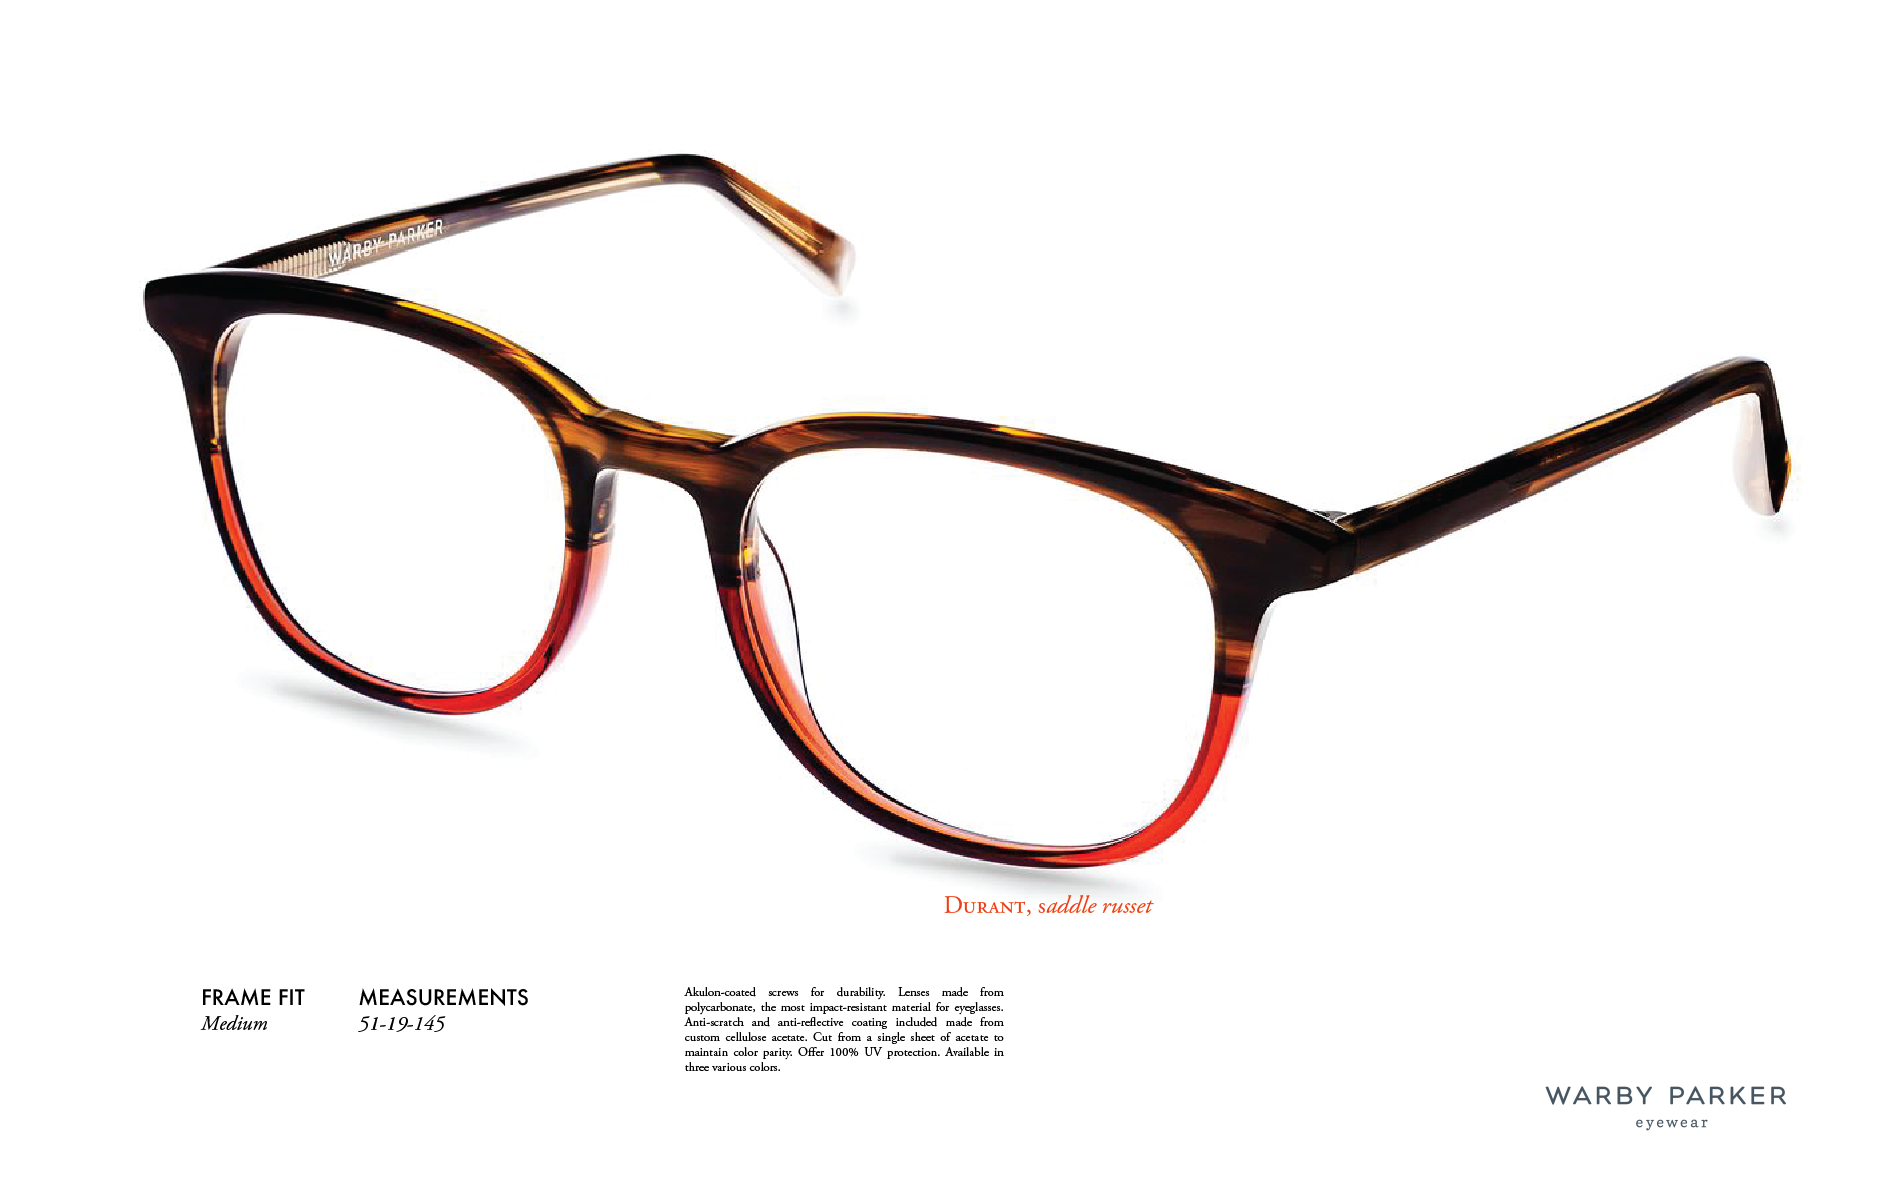 warbyparkerADs_-12.png